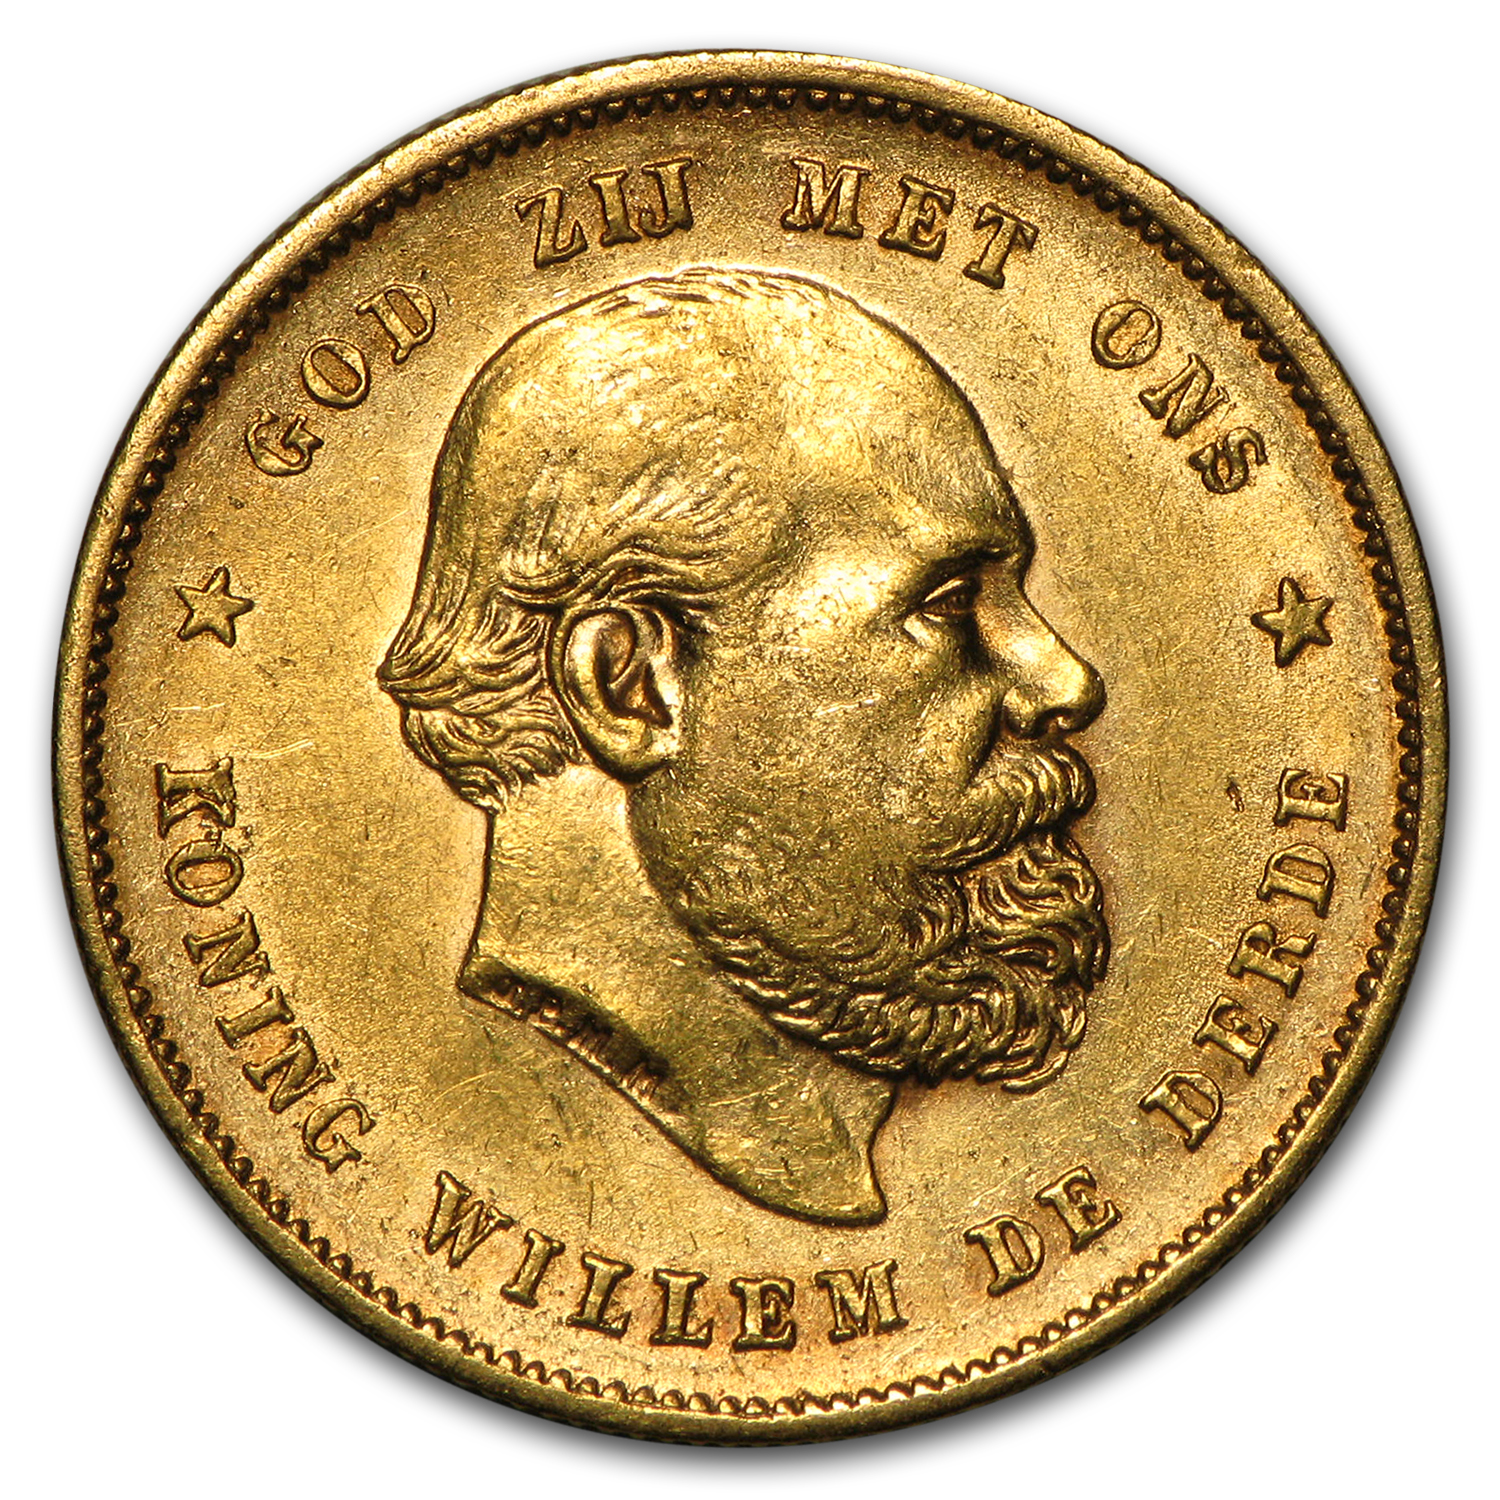 Netherlands 1875-1889 10 Gulden Gold Willem AU or Better